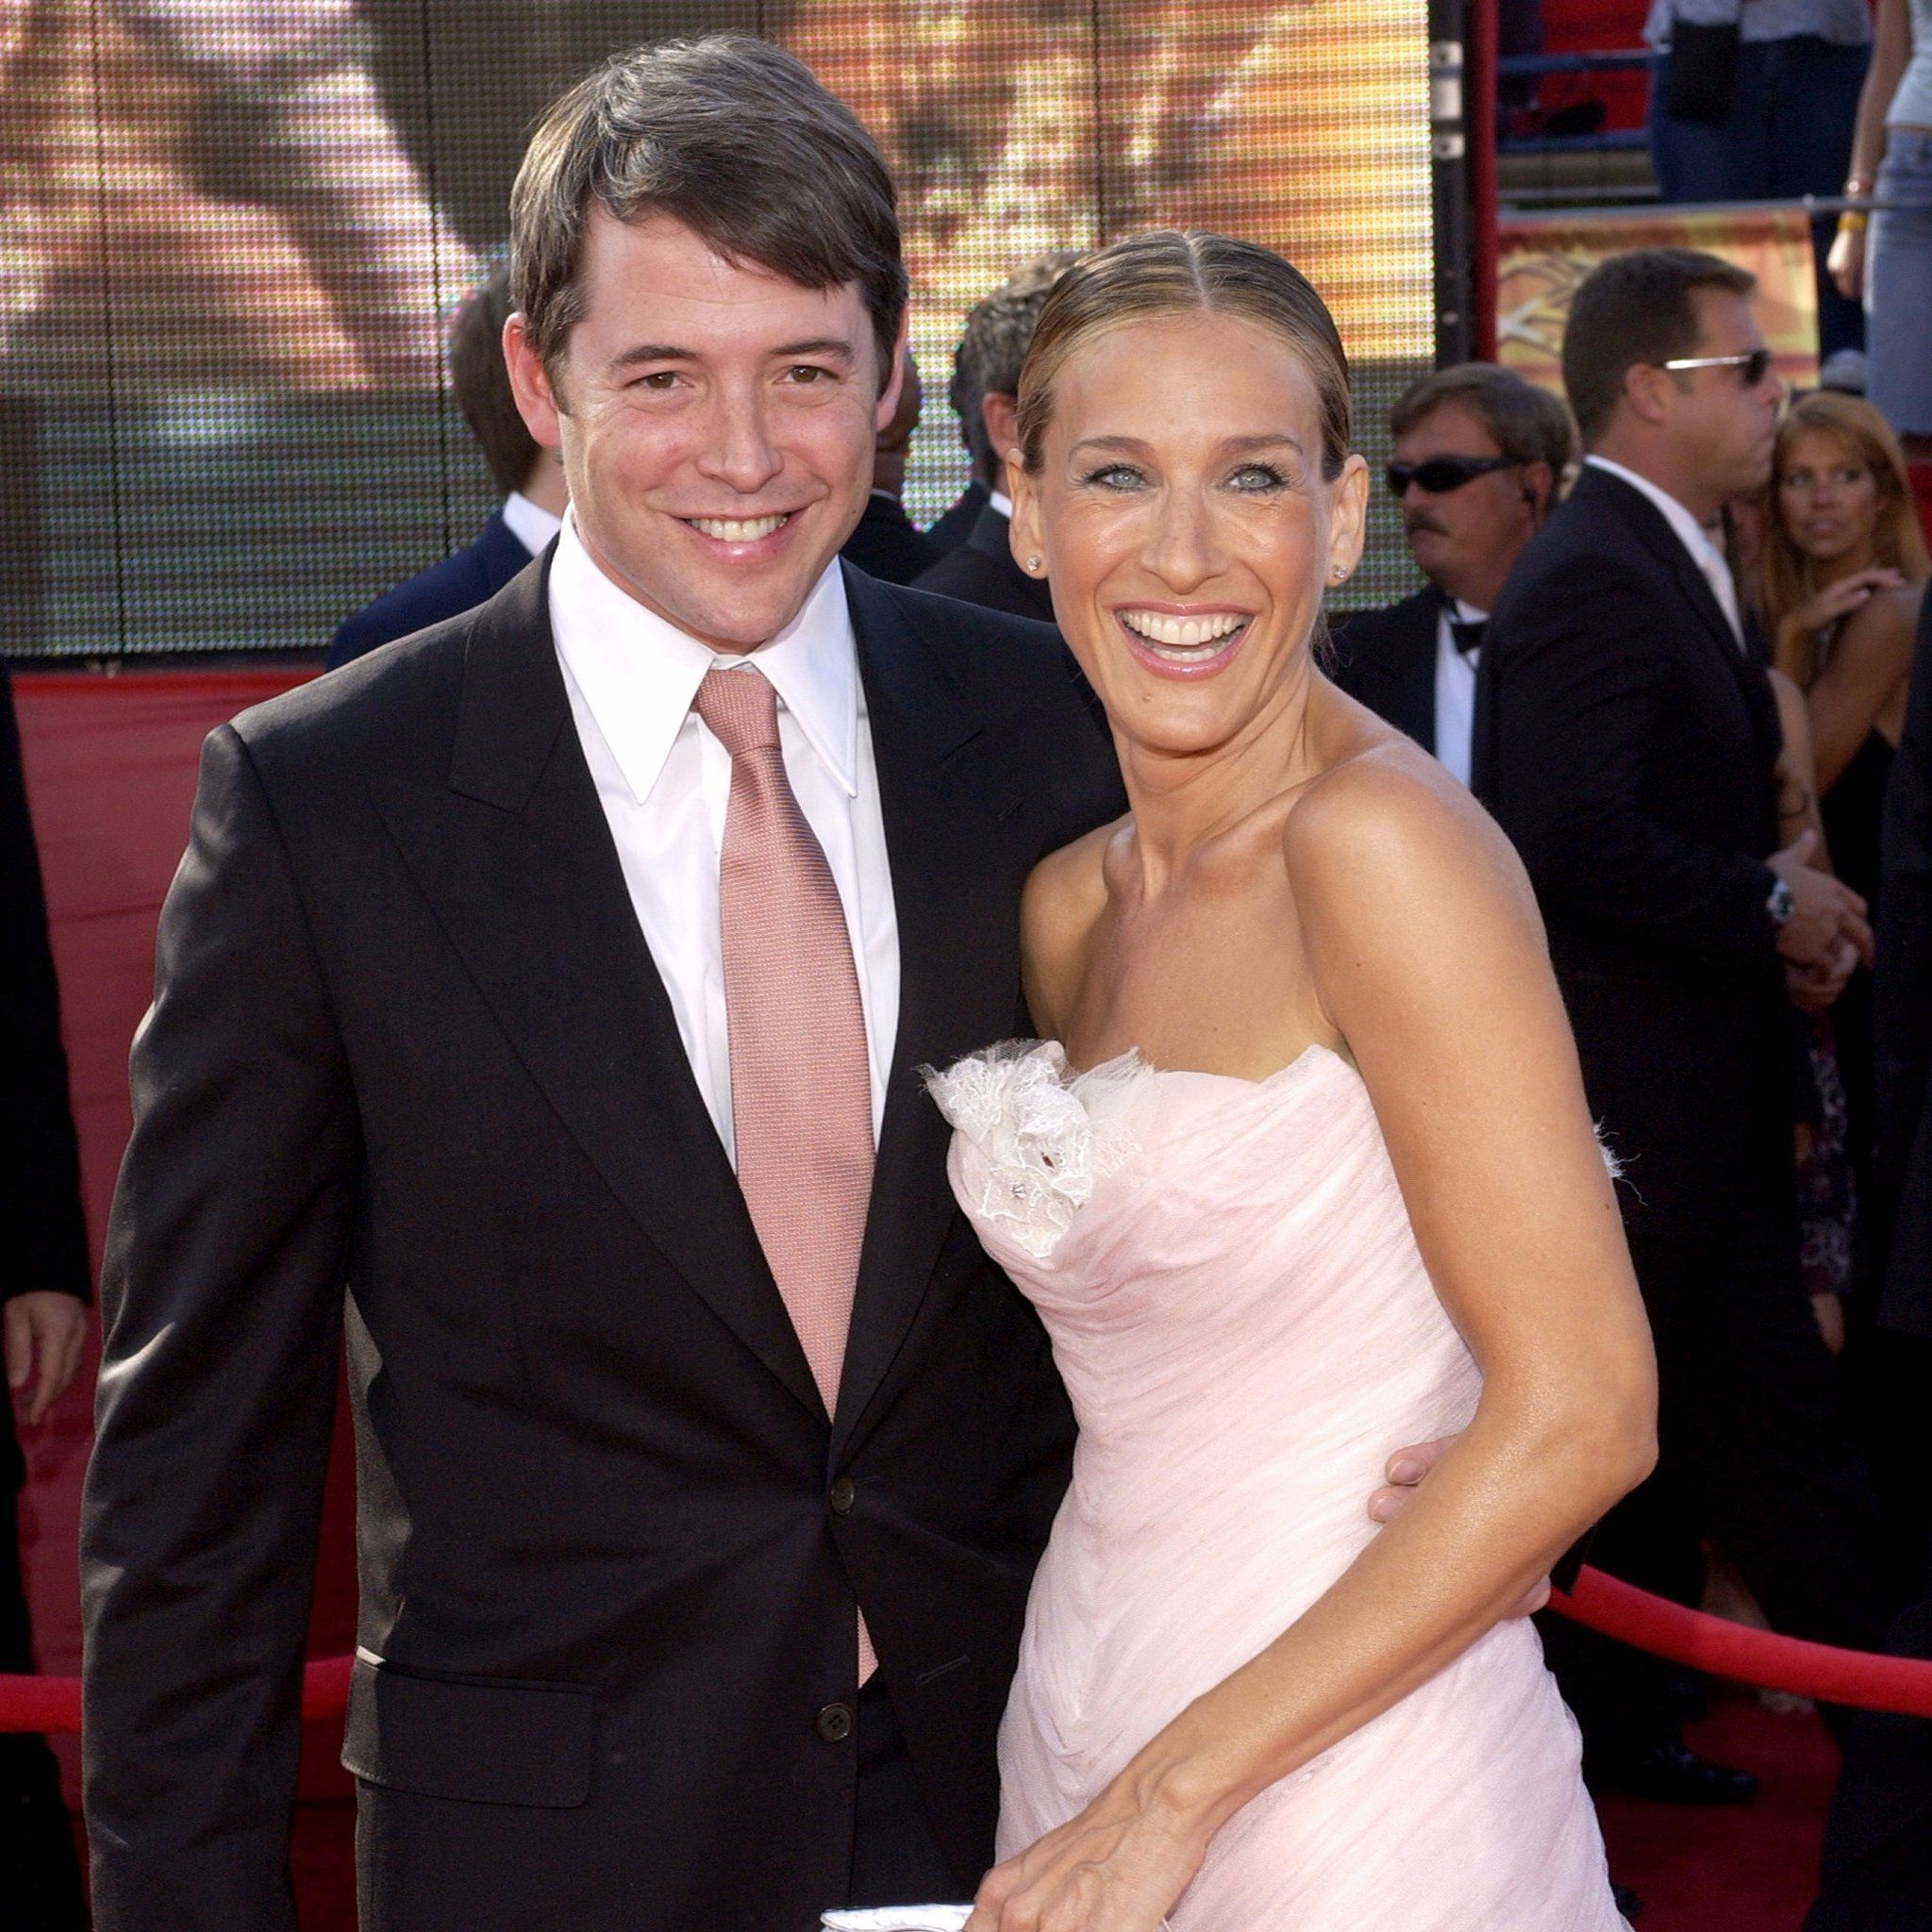 Sarah Jessica Parker And Matthew Broderick: 10 Famous Couples Reveal The Secret To A Happy Marriage